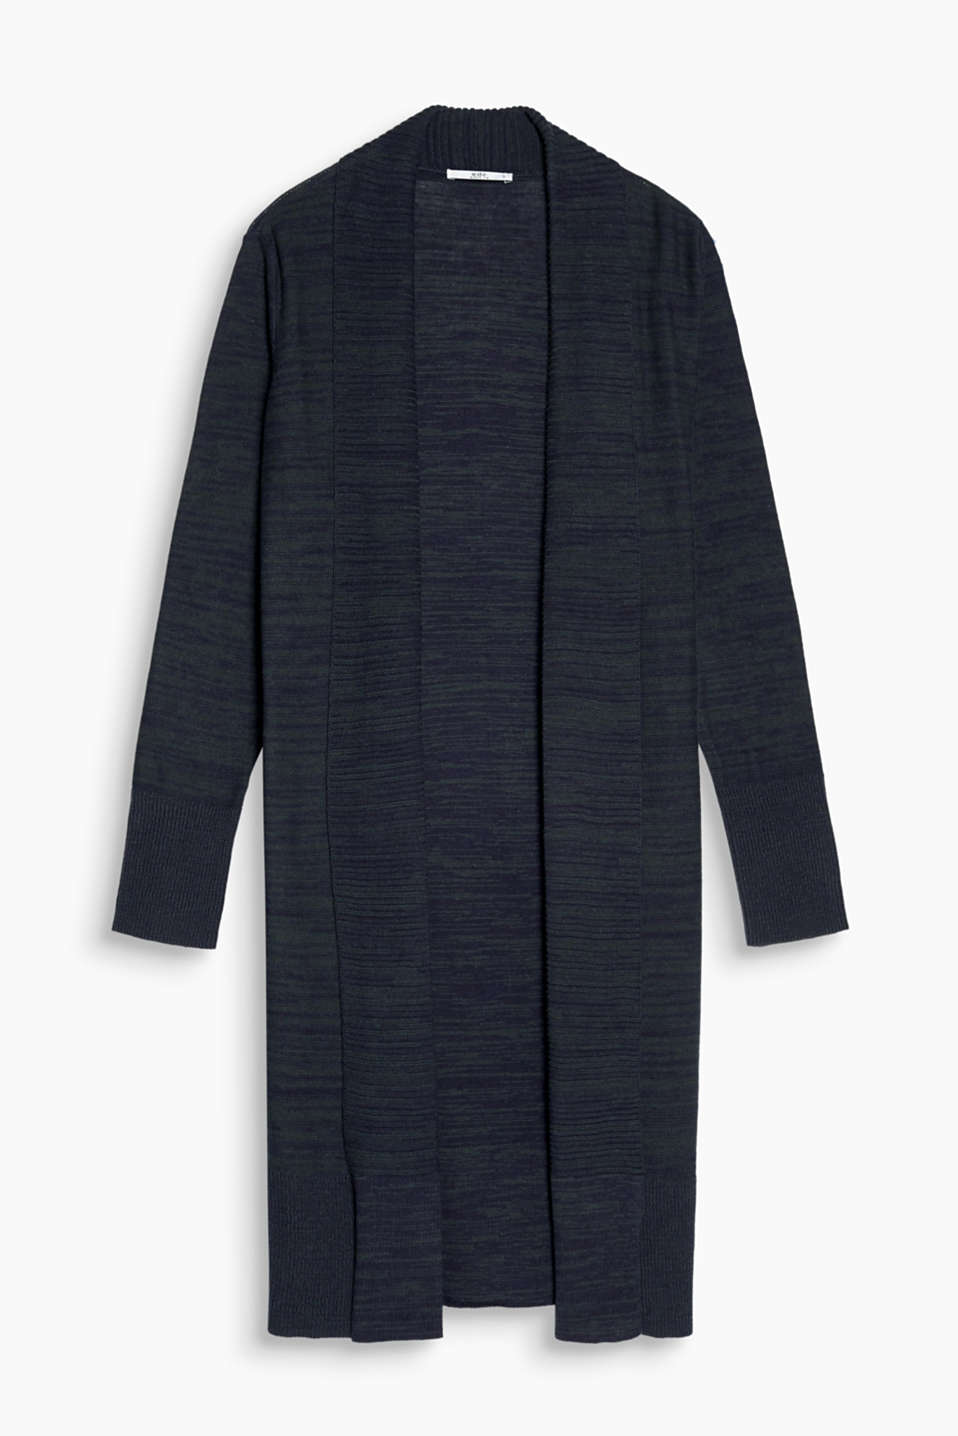 Open long cardigan in 100% cotton in a melange look with wide ribbed cuffs